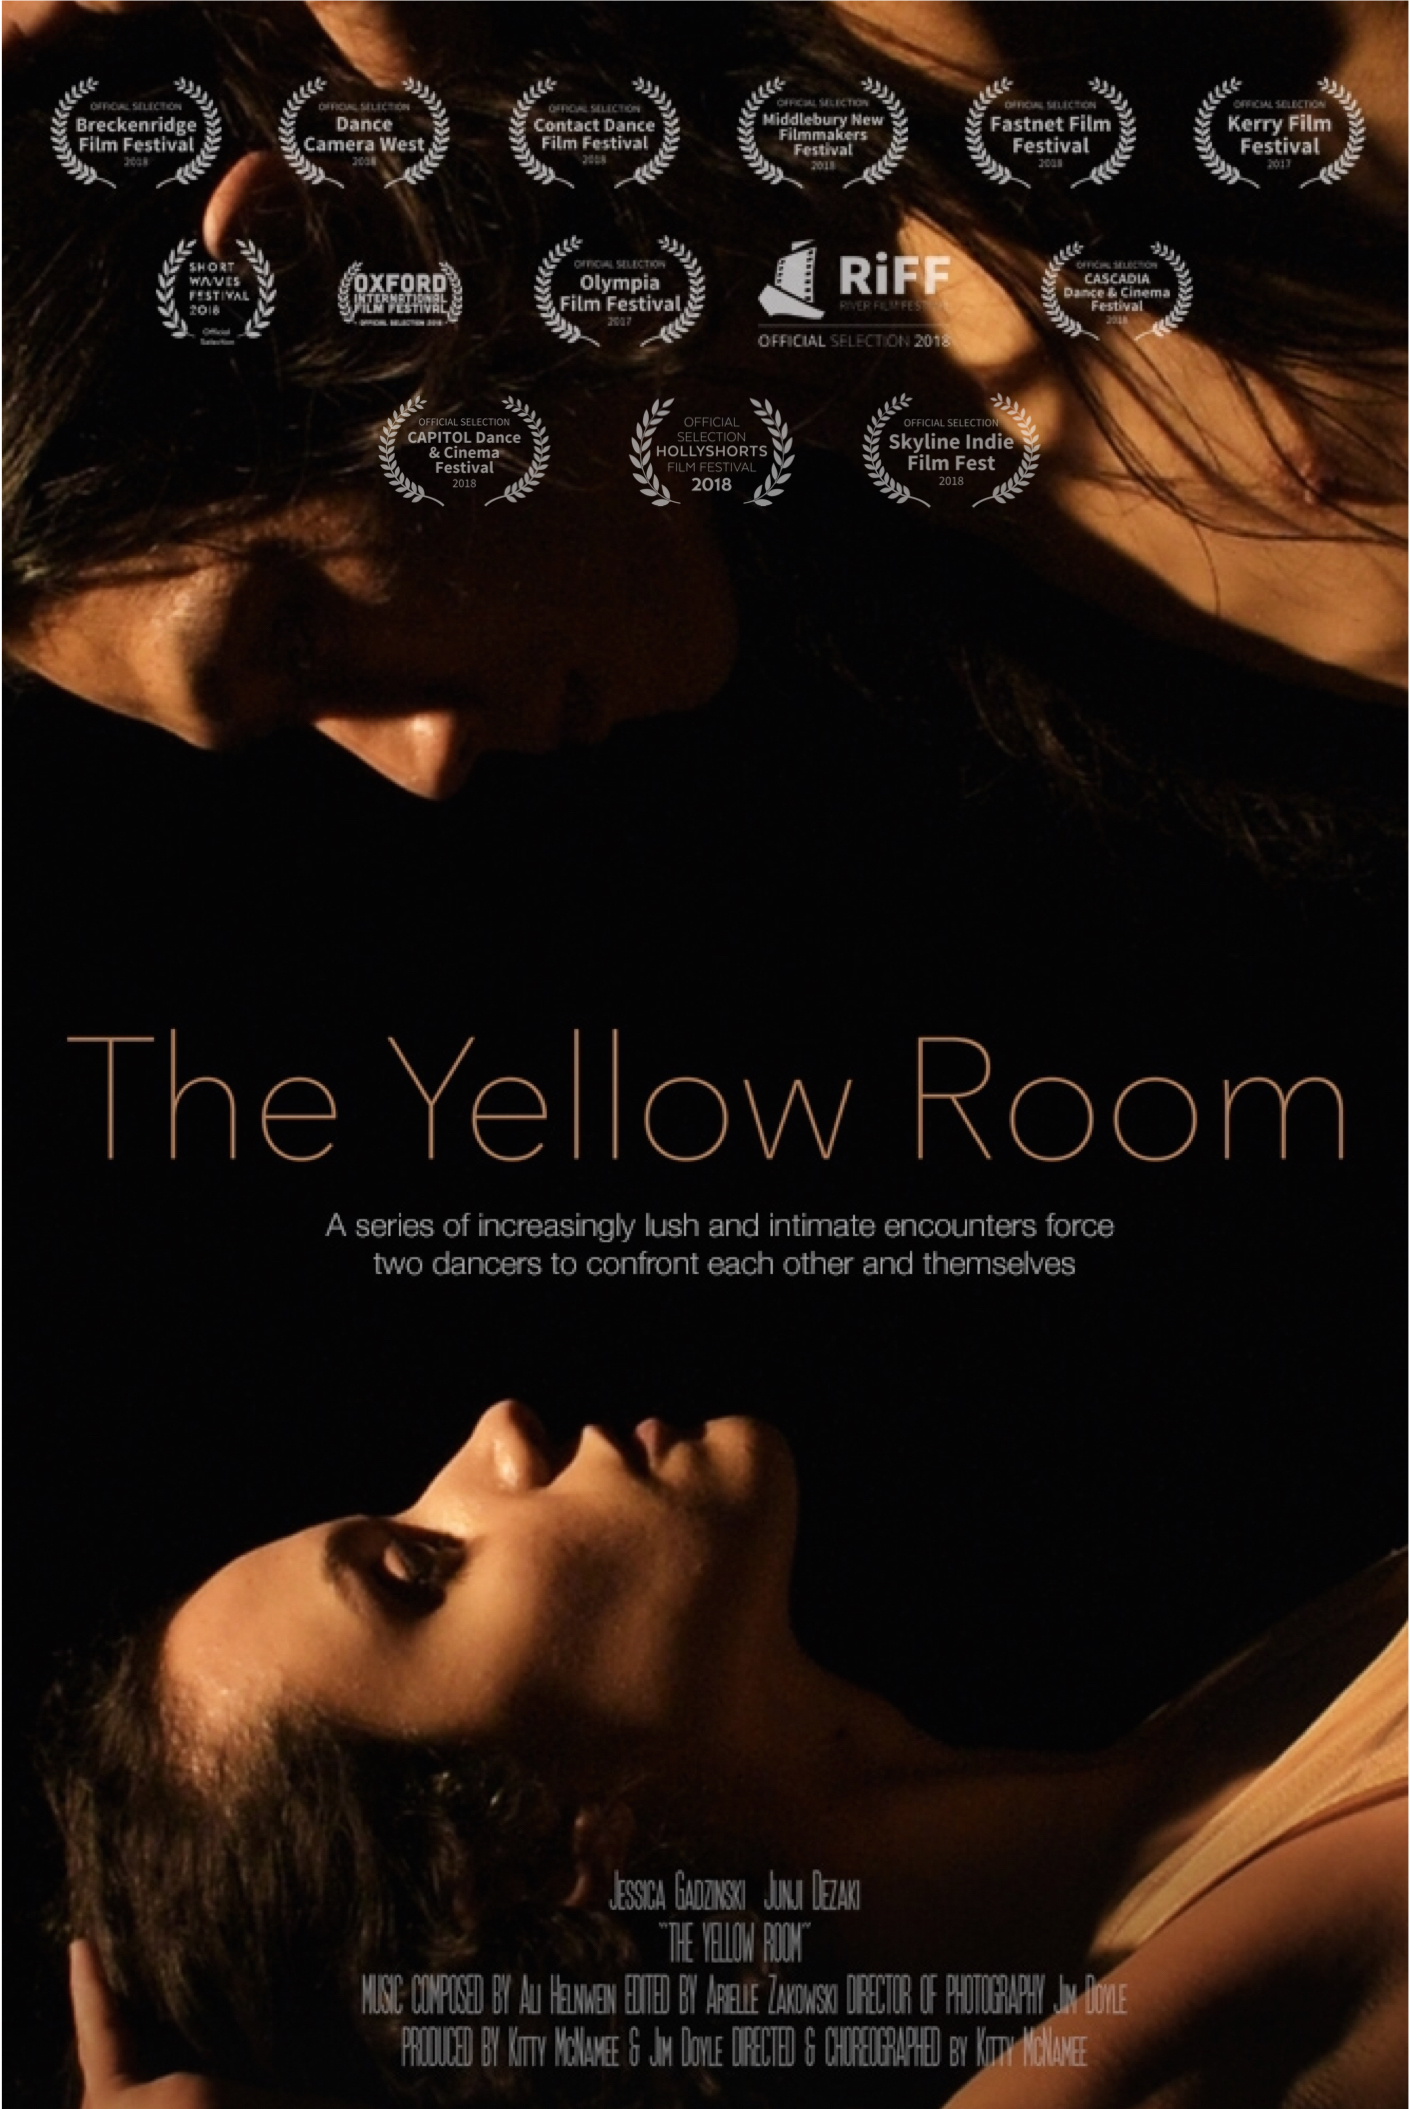 The Yellow Room  | Short Film by Kitty McNamee    Director | Choreographer